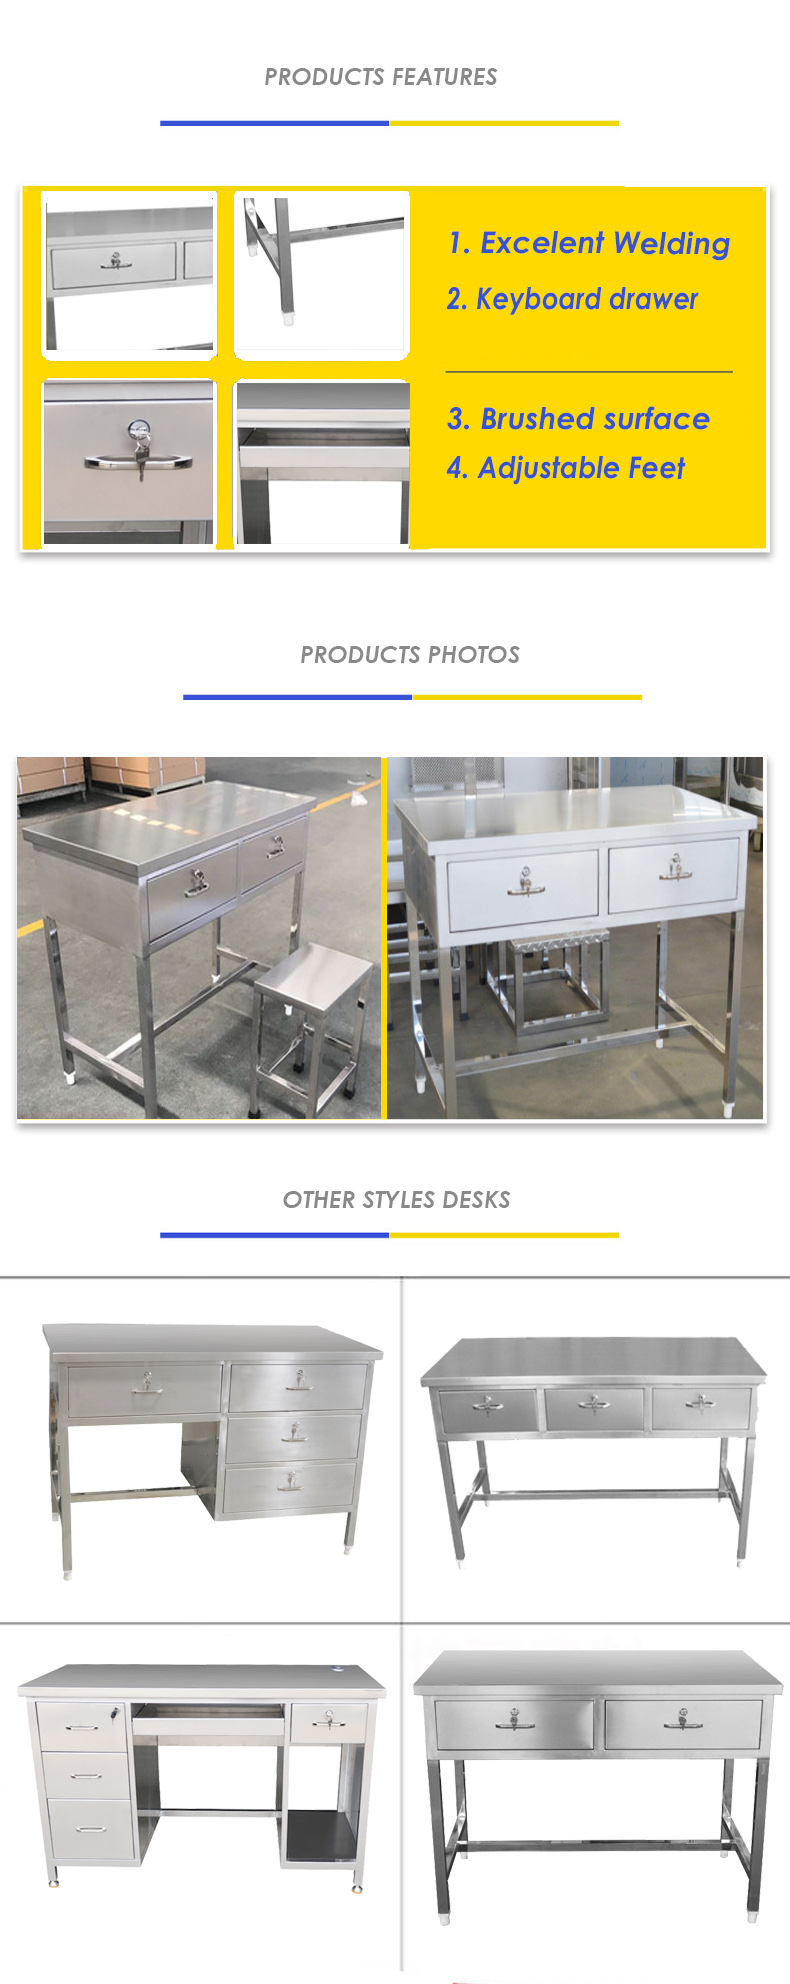 Stainless Steel Desk with drawers